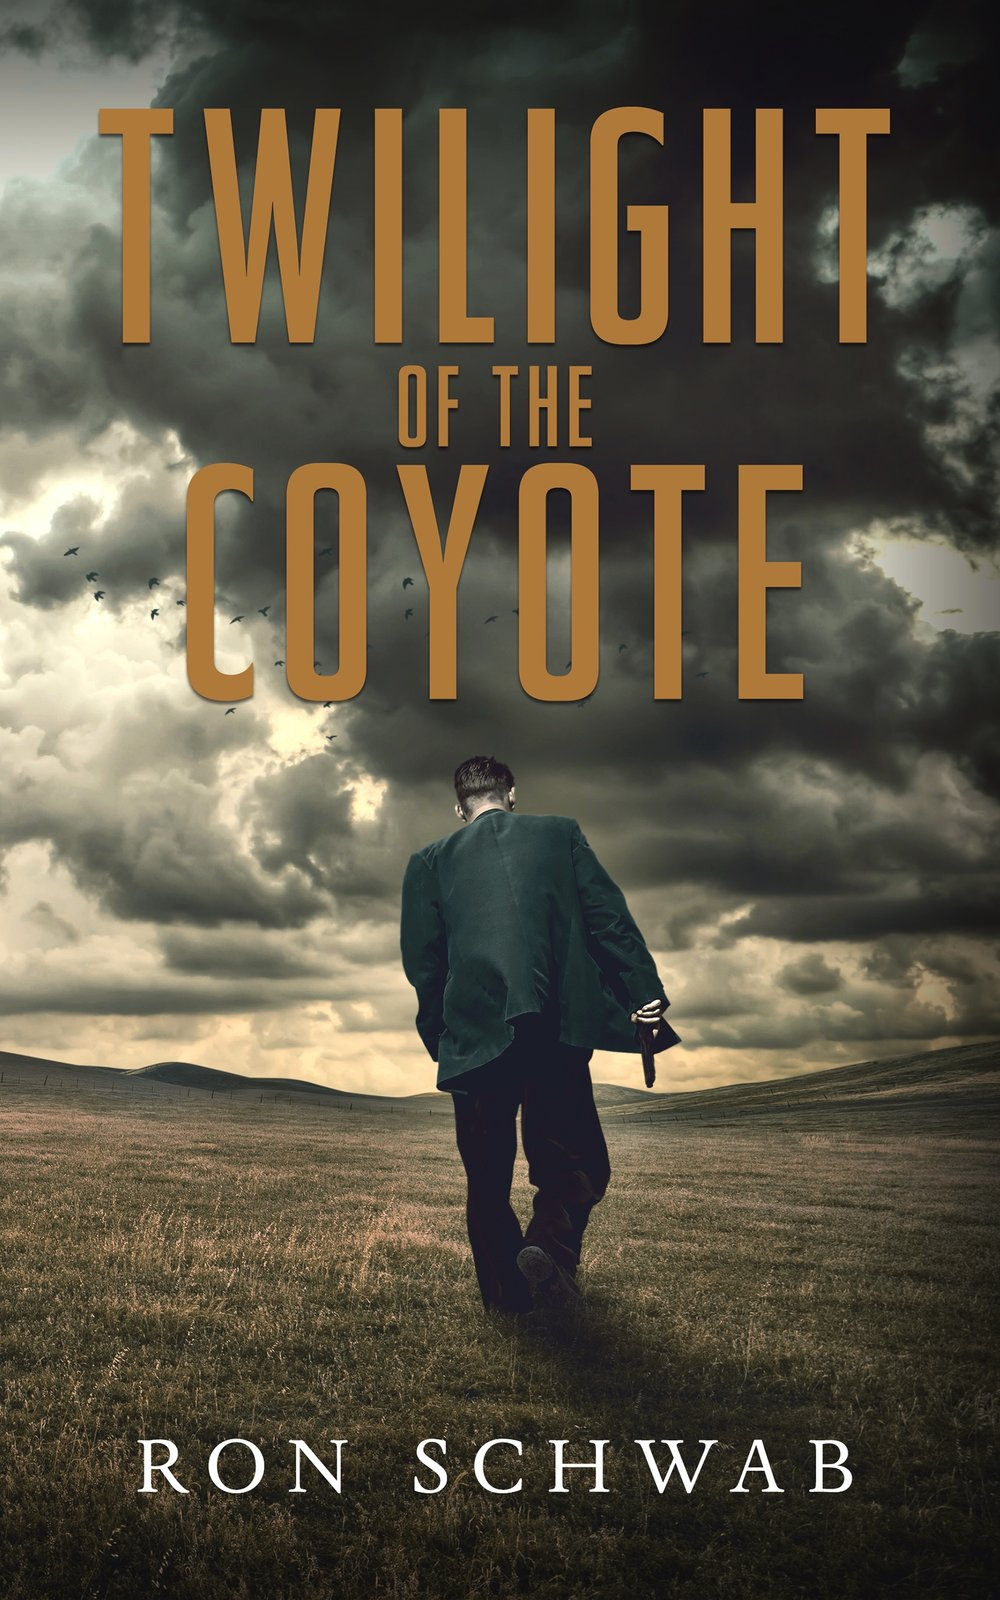 Twilight-of-the-Coyote-Kindle.jpg